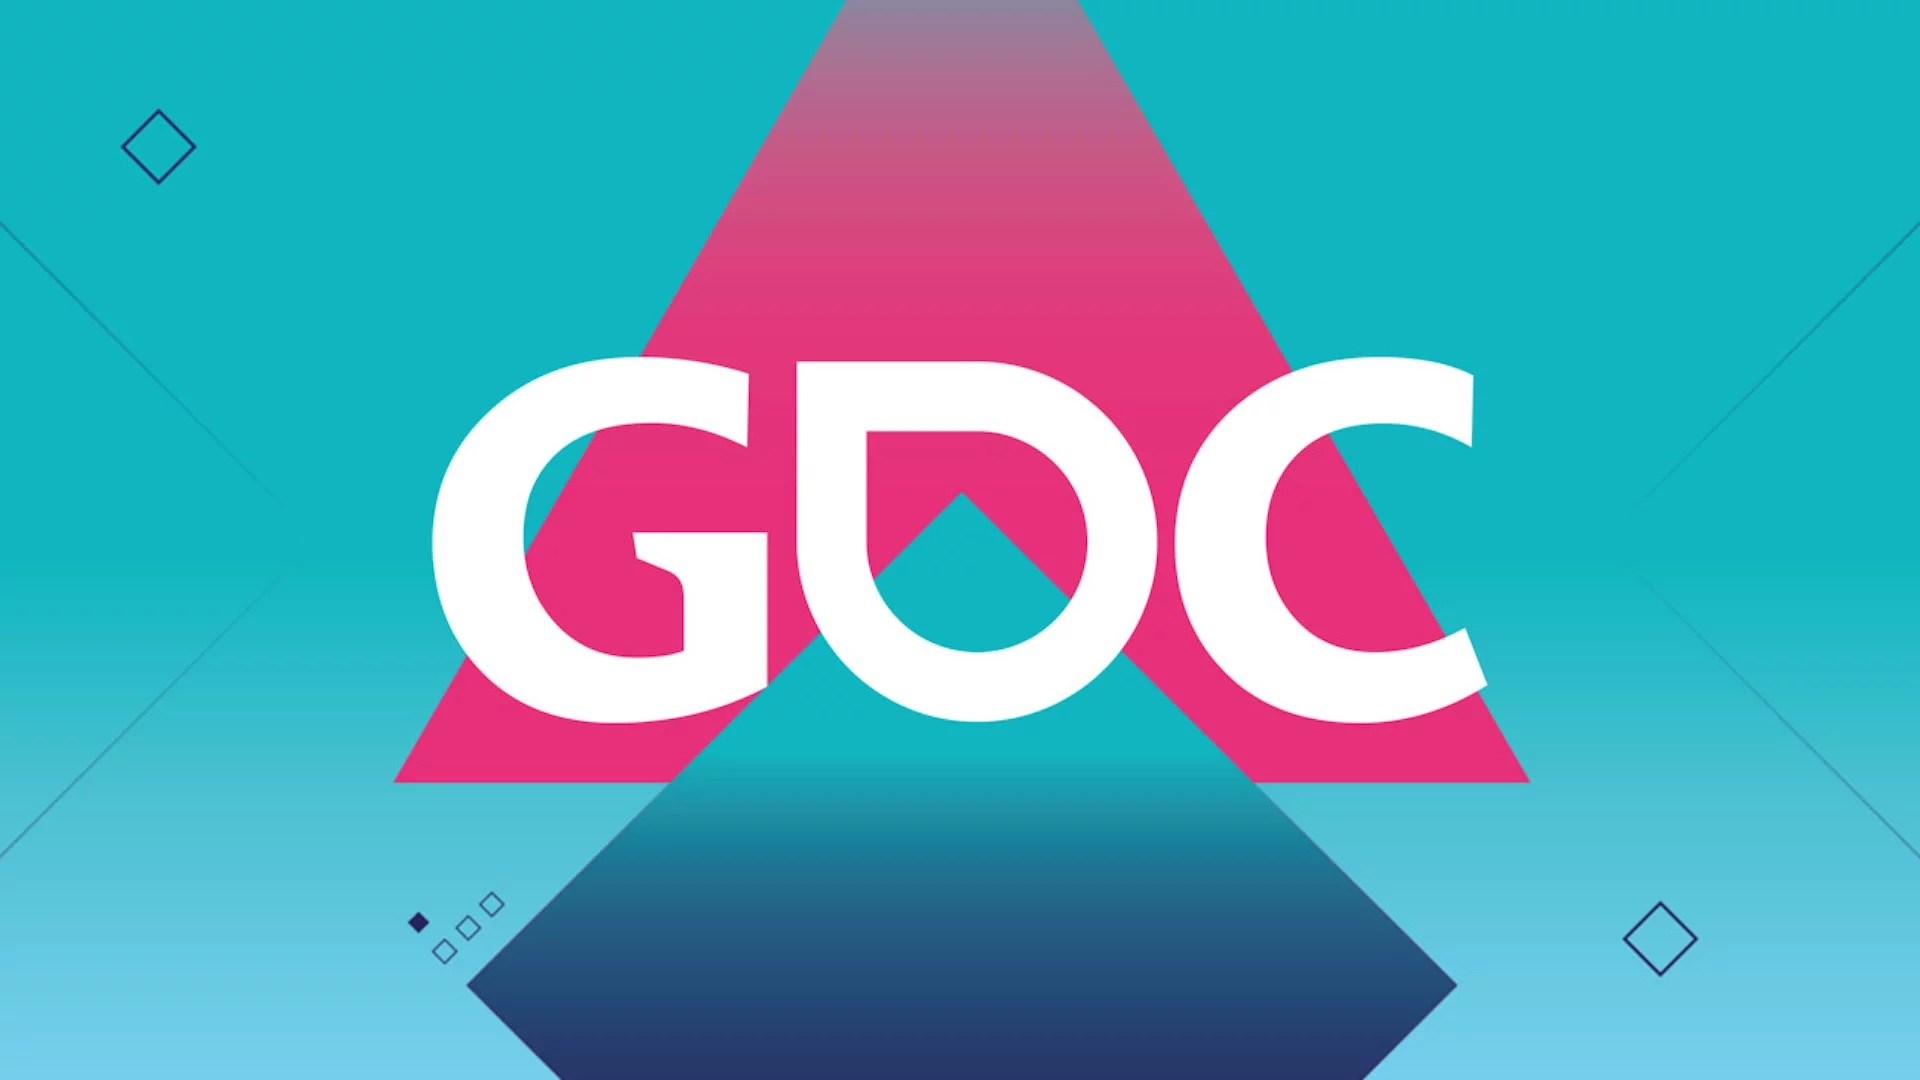 Registrations are now open for the free digital event, GDC Showcase